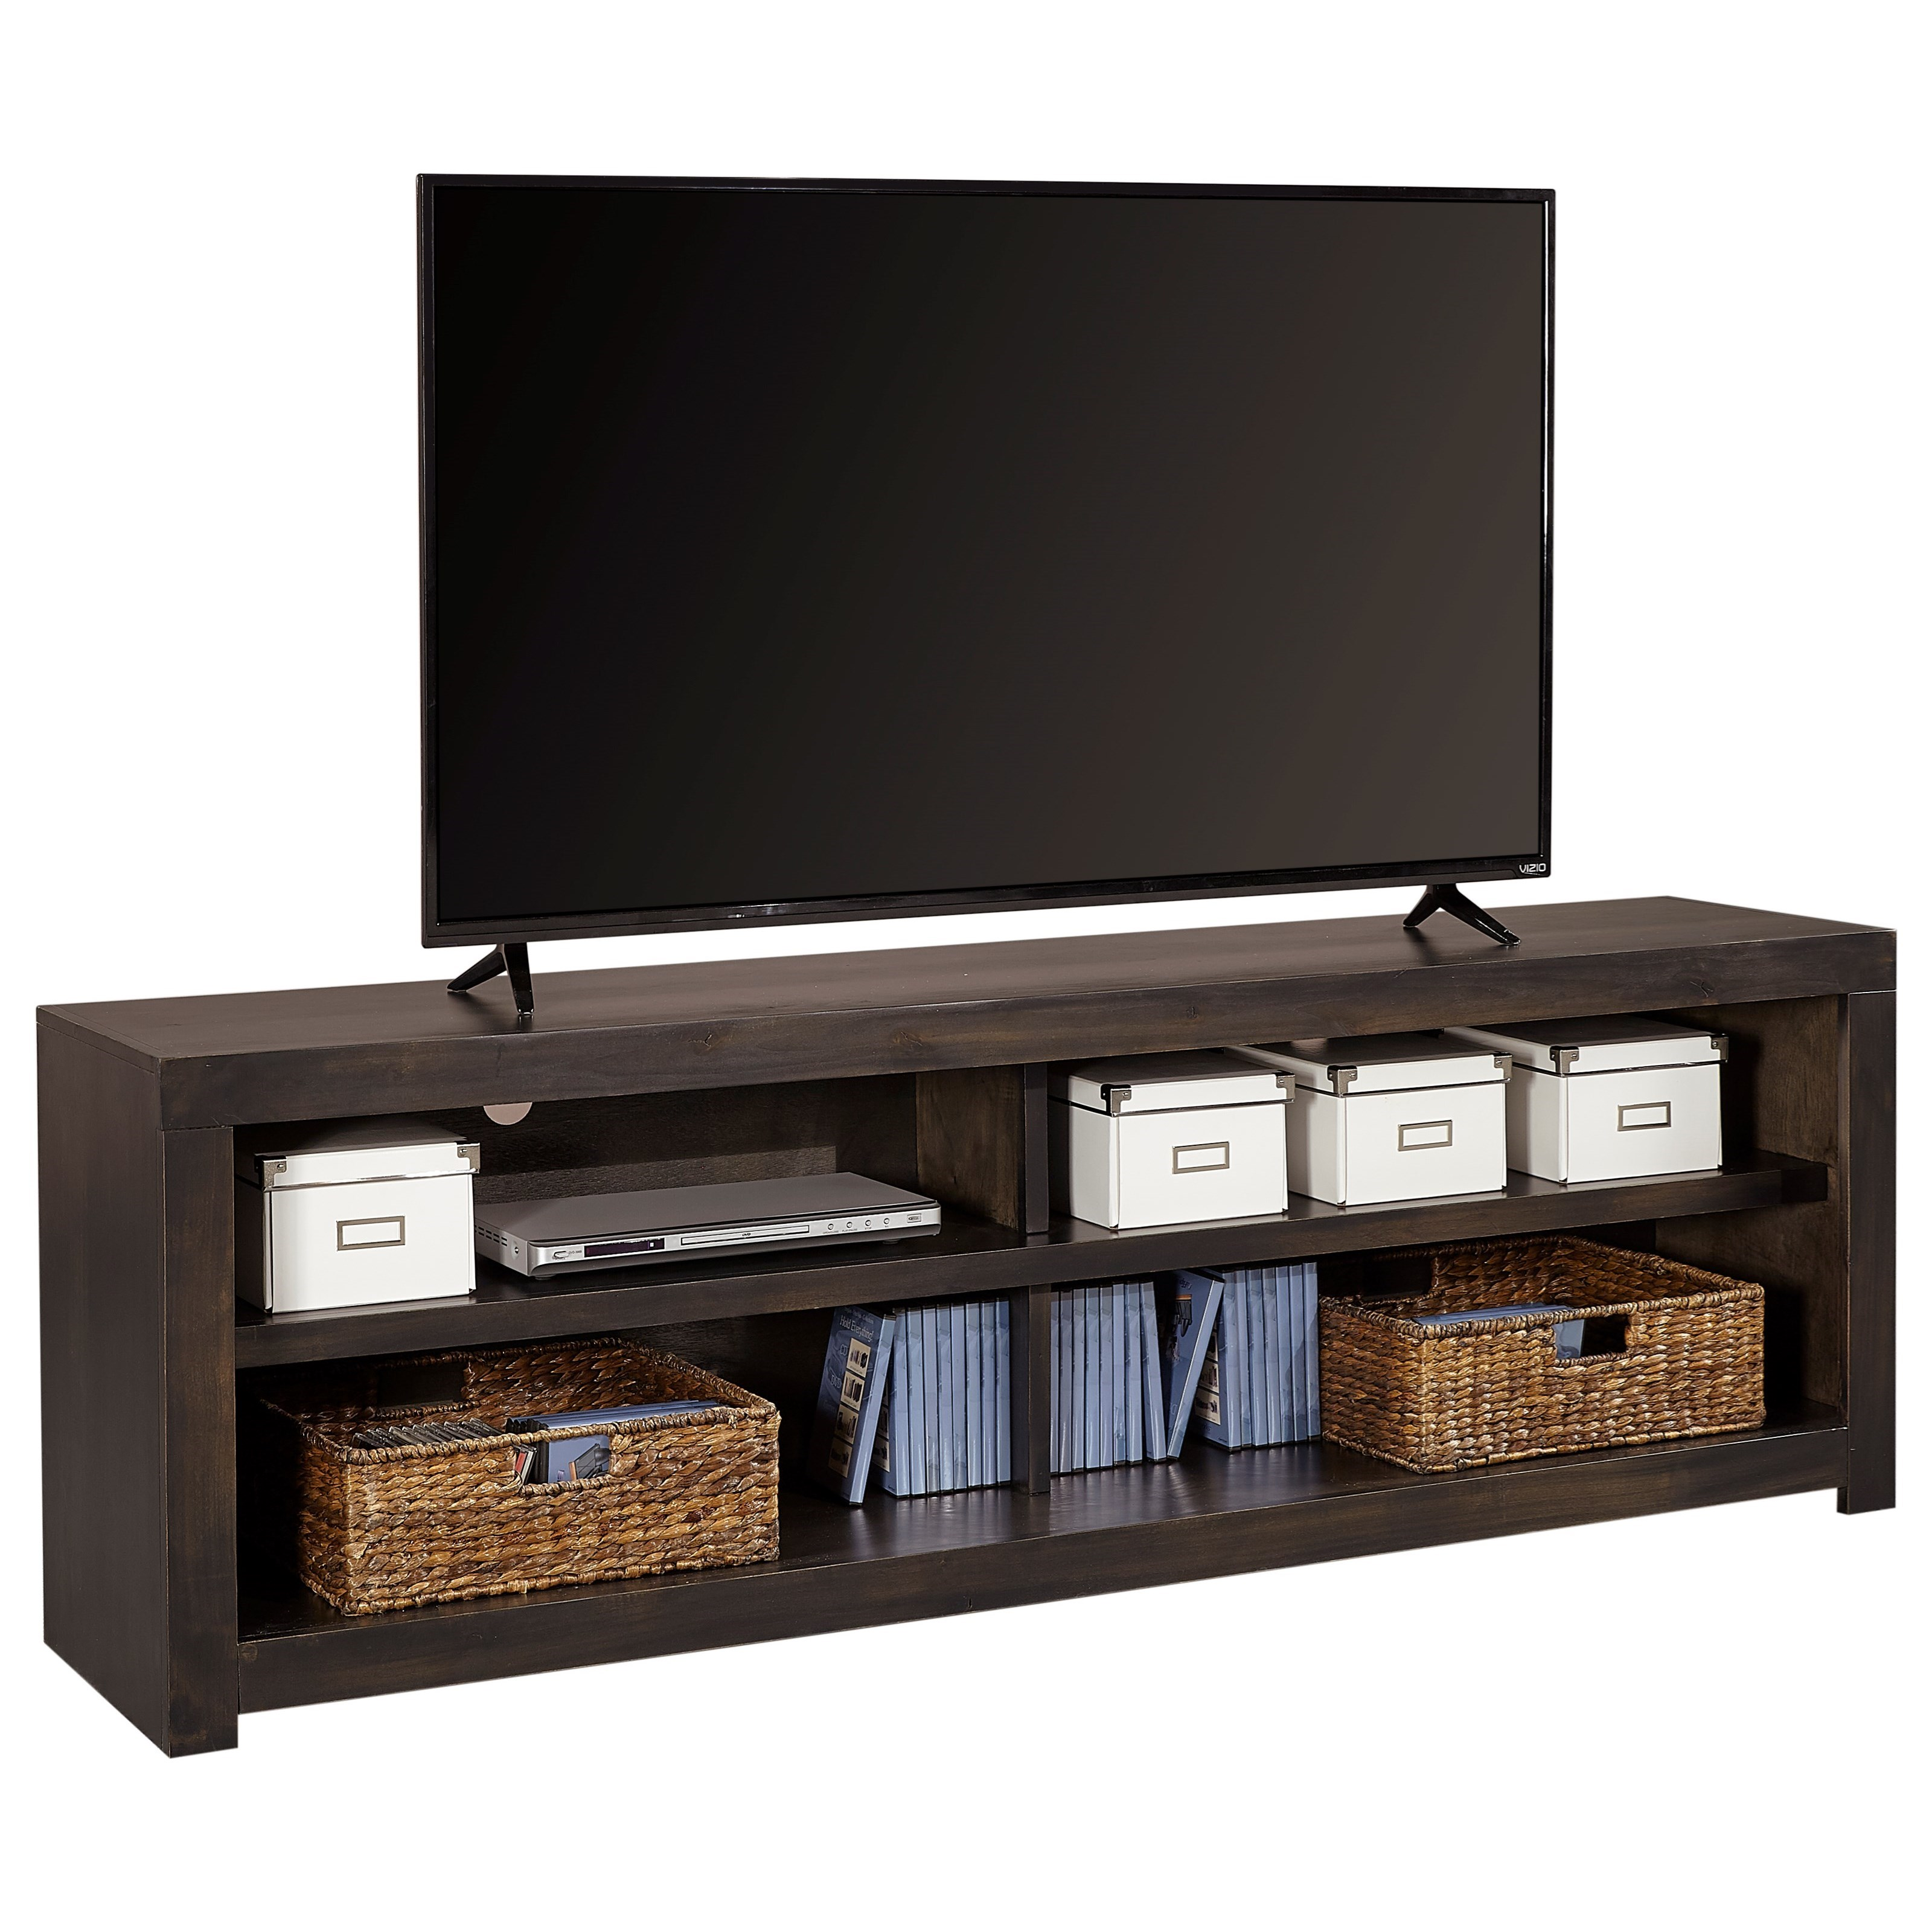 "Avery Loft 74"" TV Console by Aspenhome at Walker's Furniture"